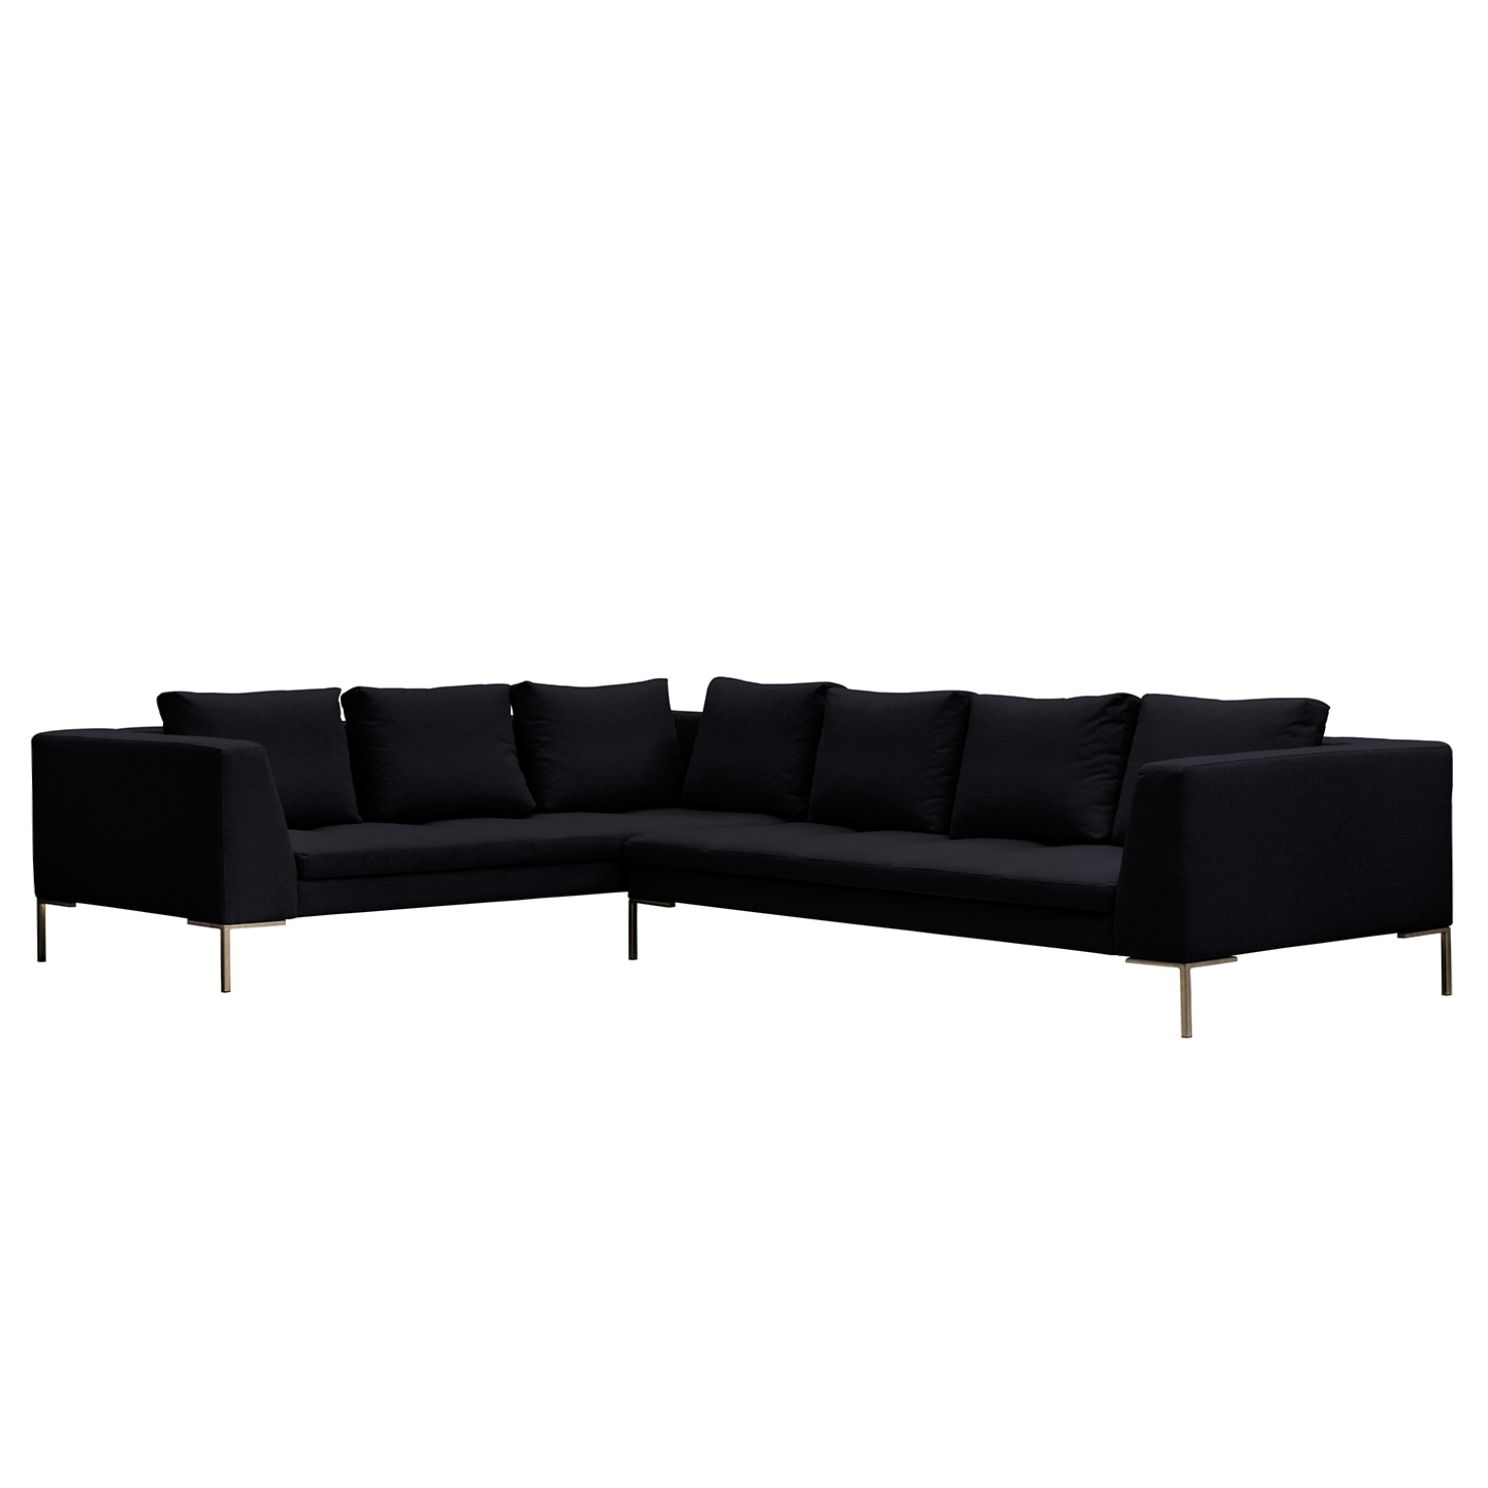 kleines sofa f r jugendzimmer. Black Bedroom Furniture Sets. Home Design Ideas